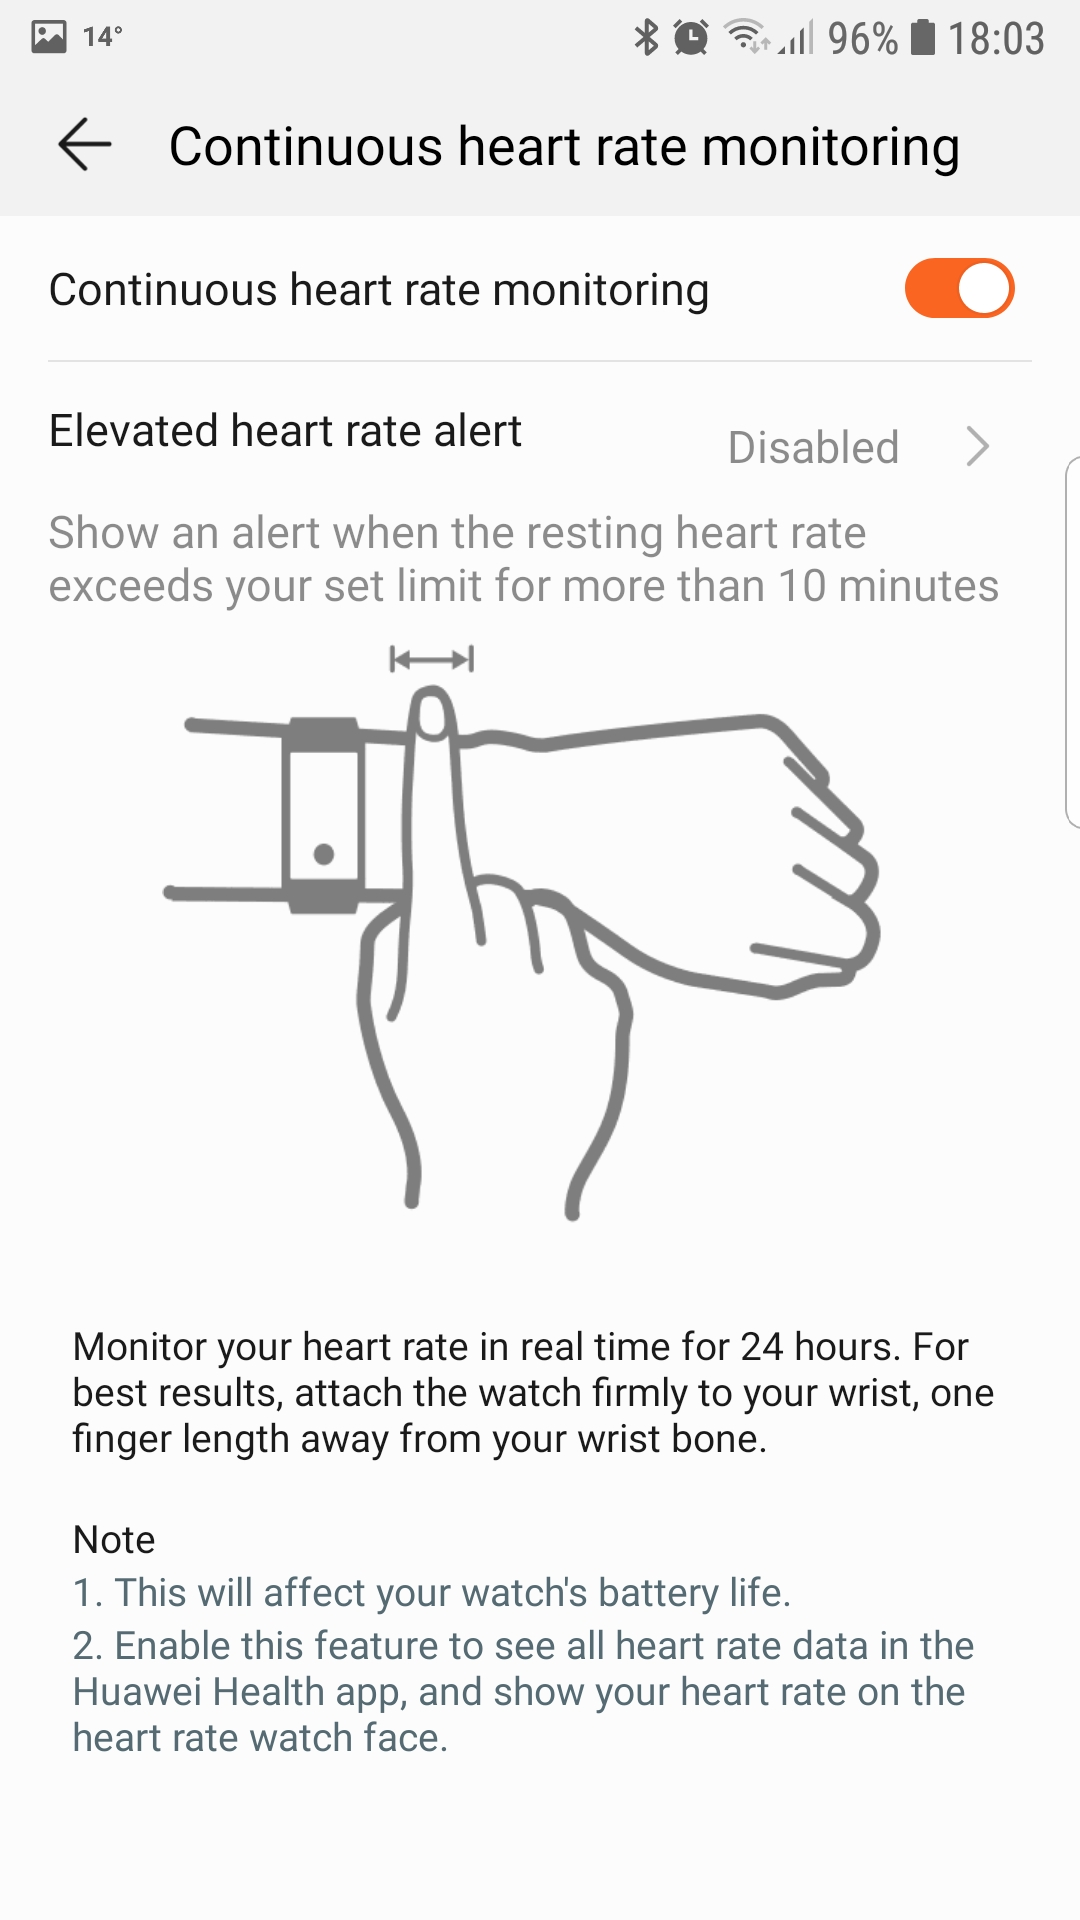 Configurando las alertas por frecuencia cardíaca elevada en el Honor Watch Magic